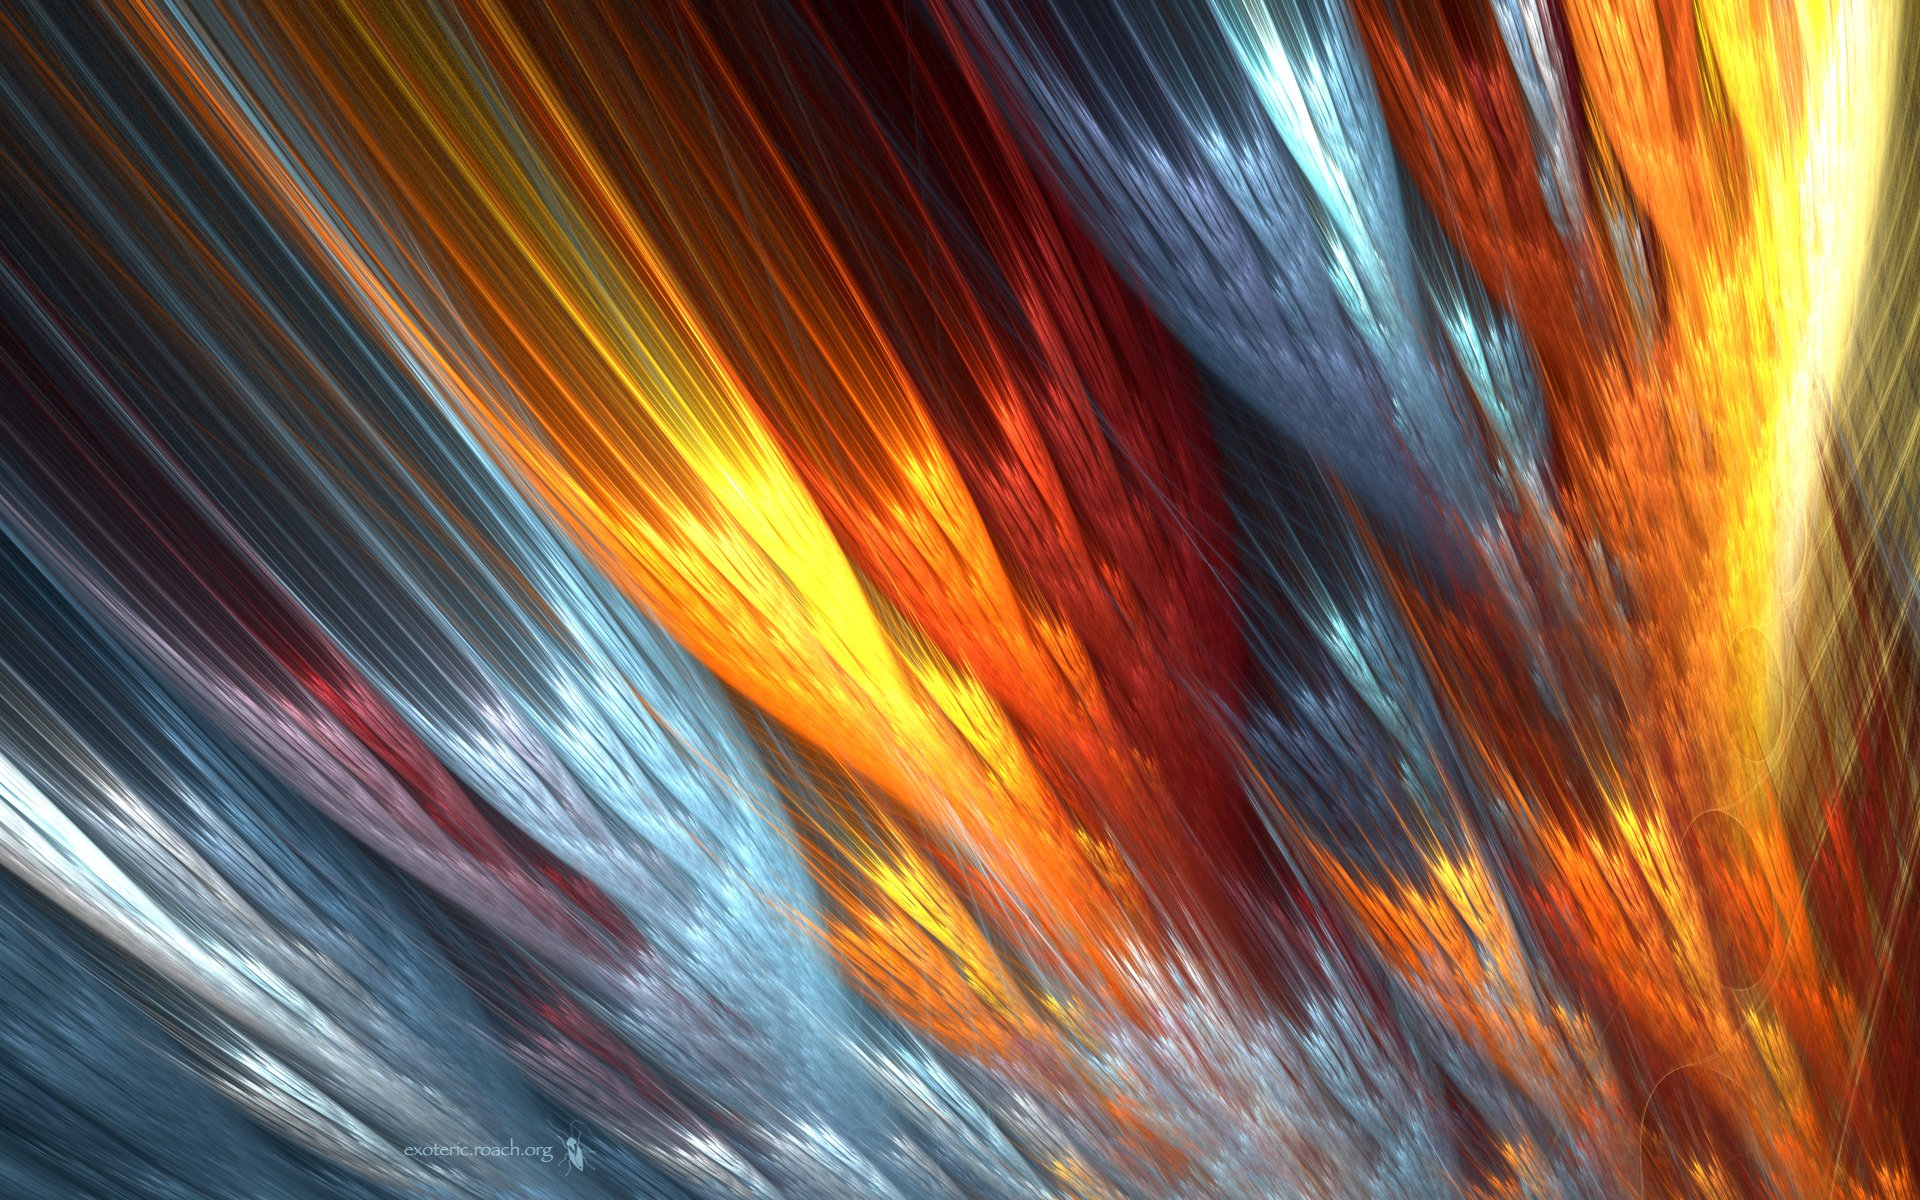 Abstract - Other  Colors Shapes Pattern Texture CGI Abstract Artistic Wallpaper